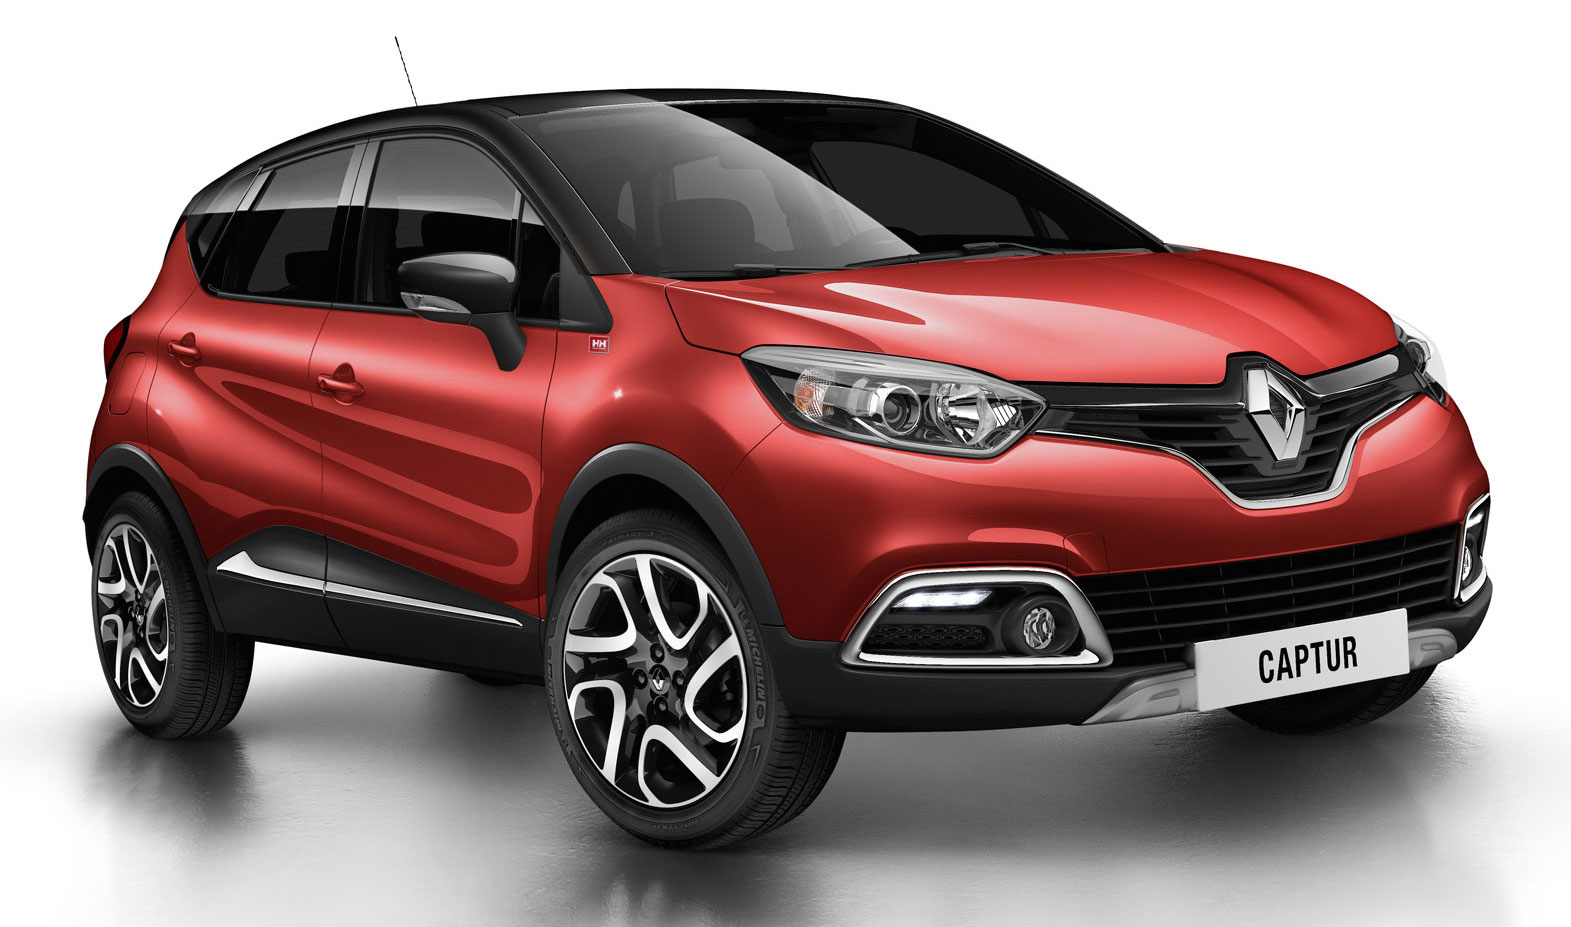 renault captur and clio gt to reach malaysia in 2015. Black Bedroom Furniture Sets. Home Design Ideas